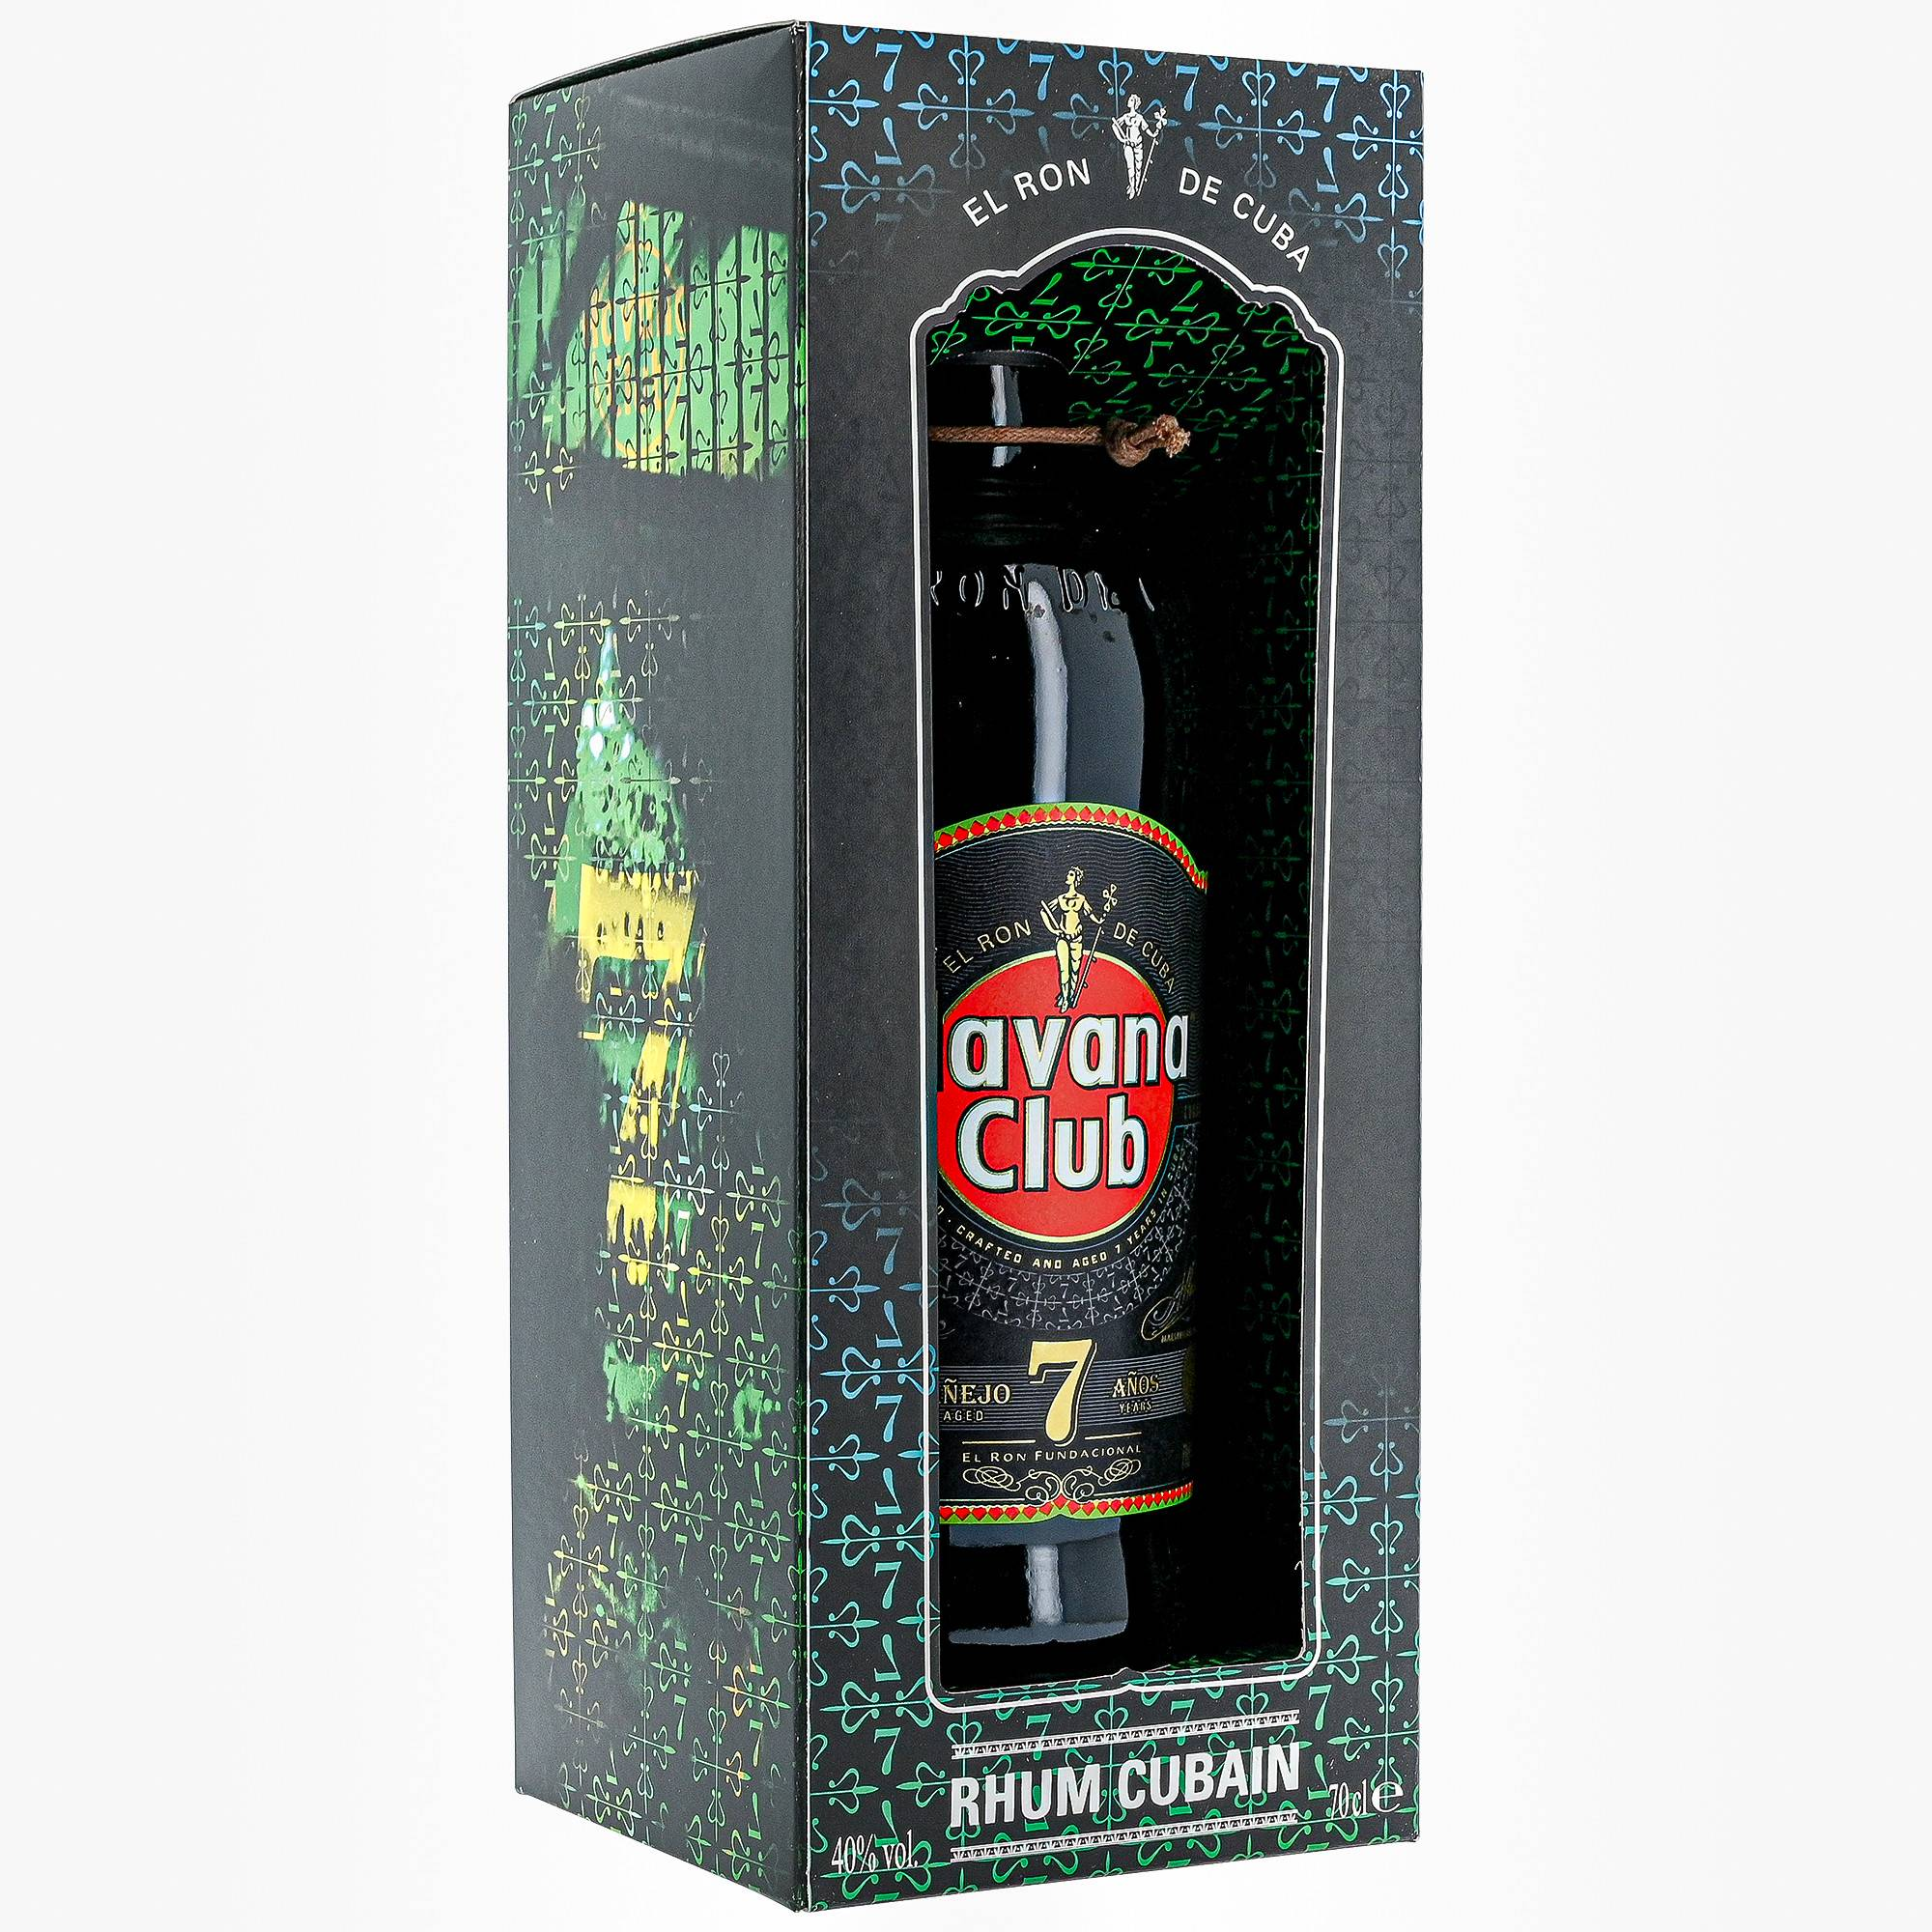 Carte Magasin Leclerc Beau Havana Club Of 39 Nouveau Carte Magasin Leclerc